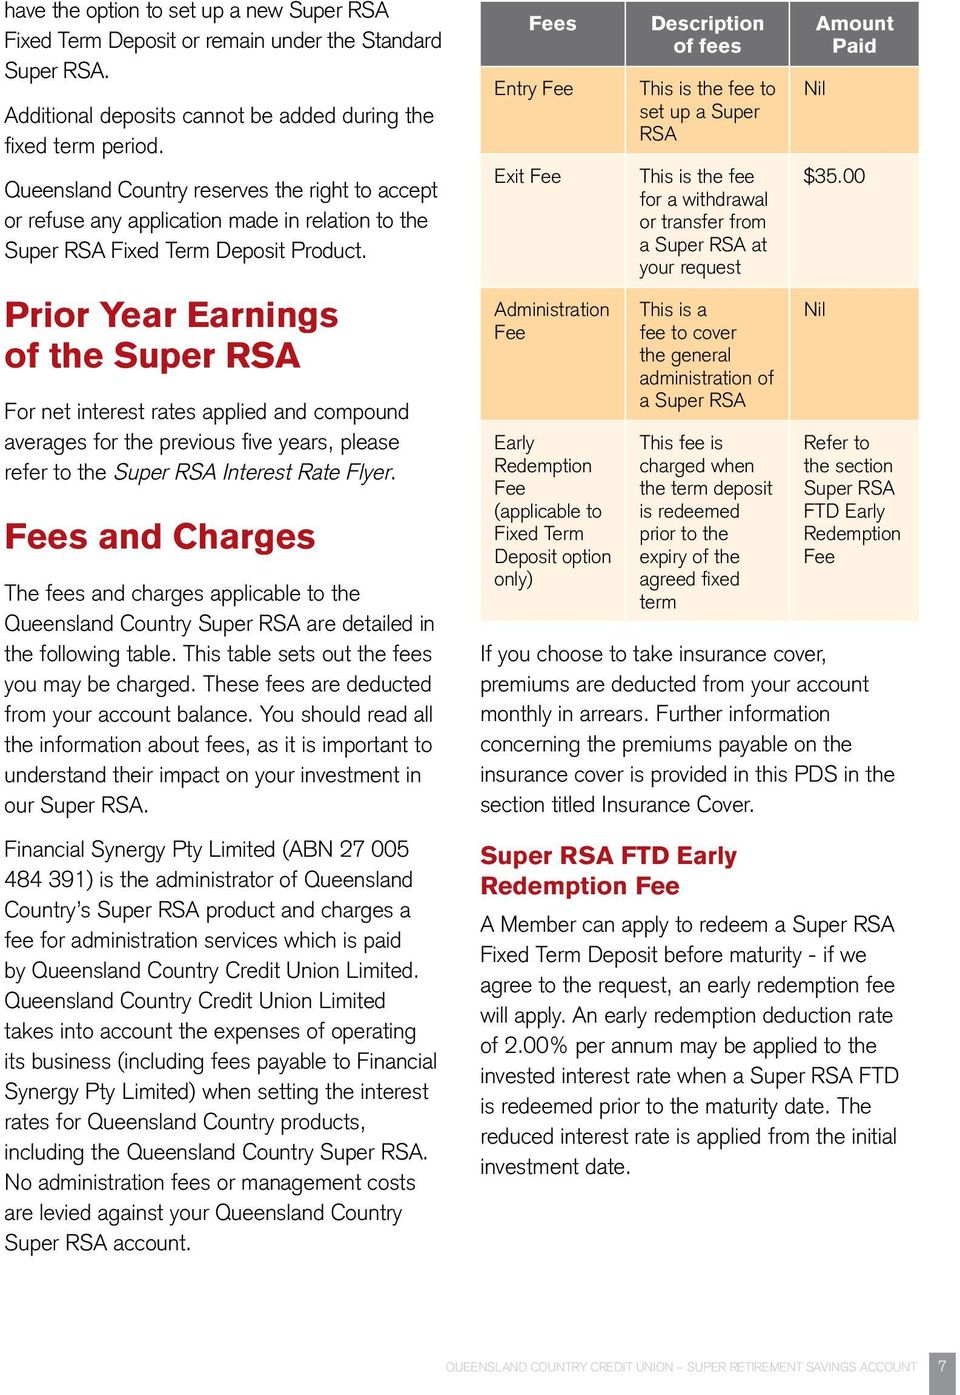 Prior Year Earnings of the Super RSA For net interest rates applied and compound averages for the previous five years, please refer to the Super RSA Interest Rate Flyer.